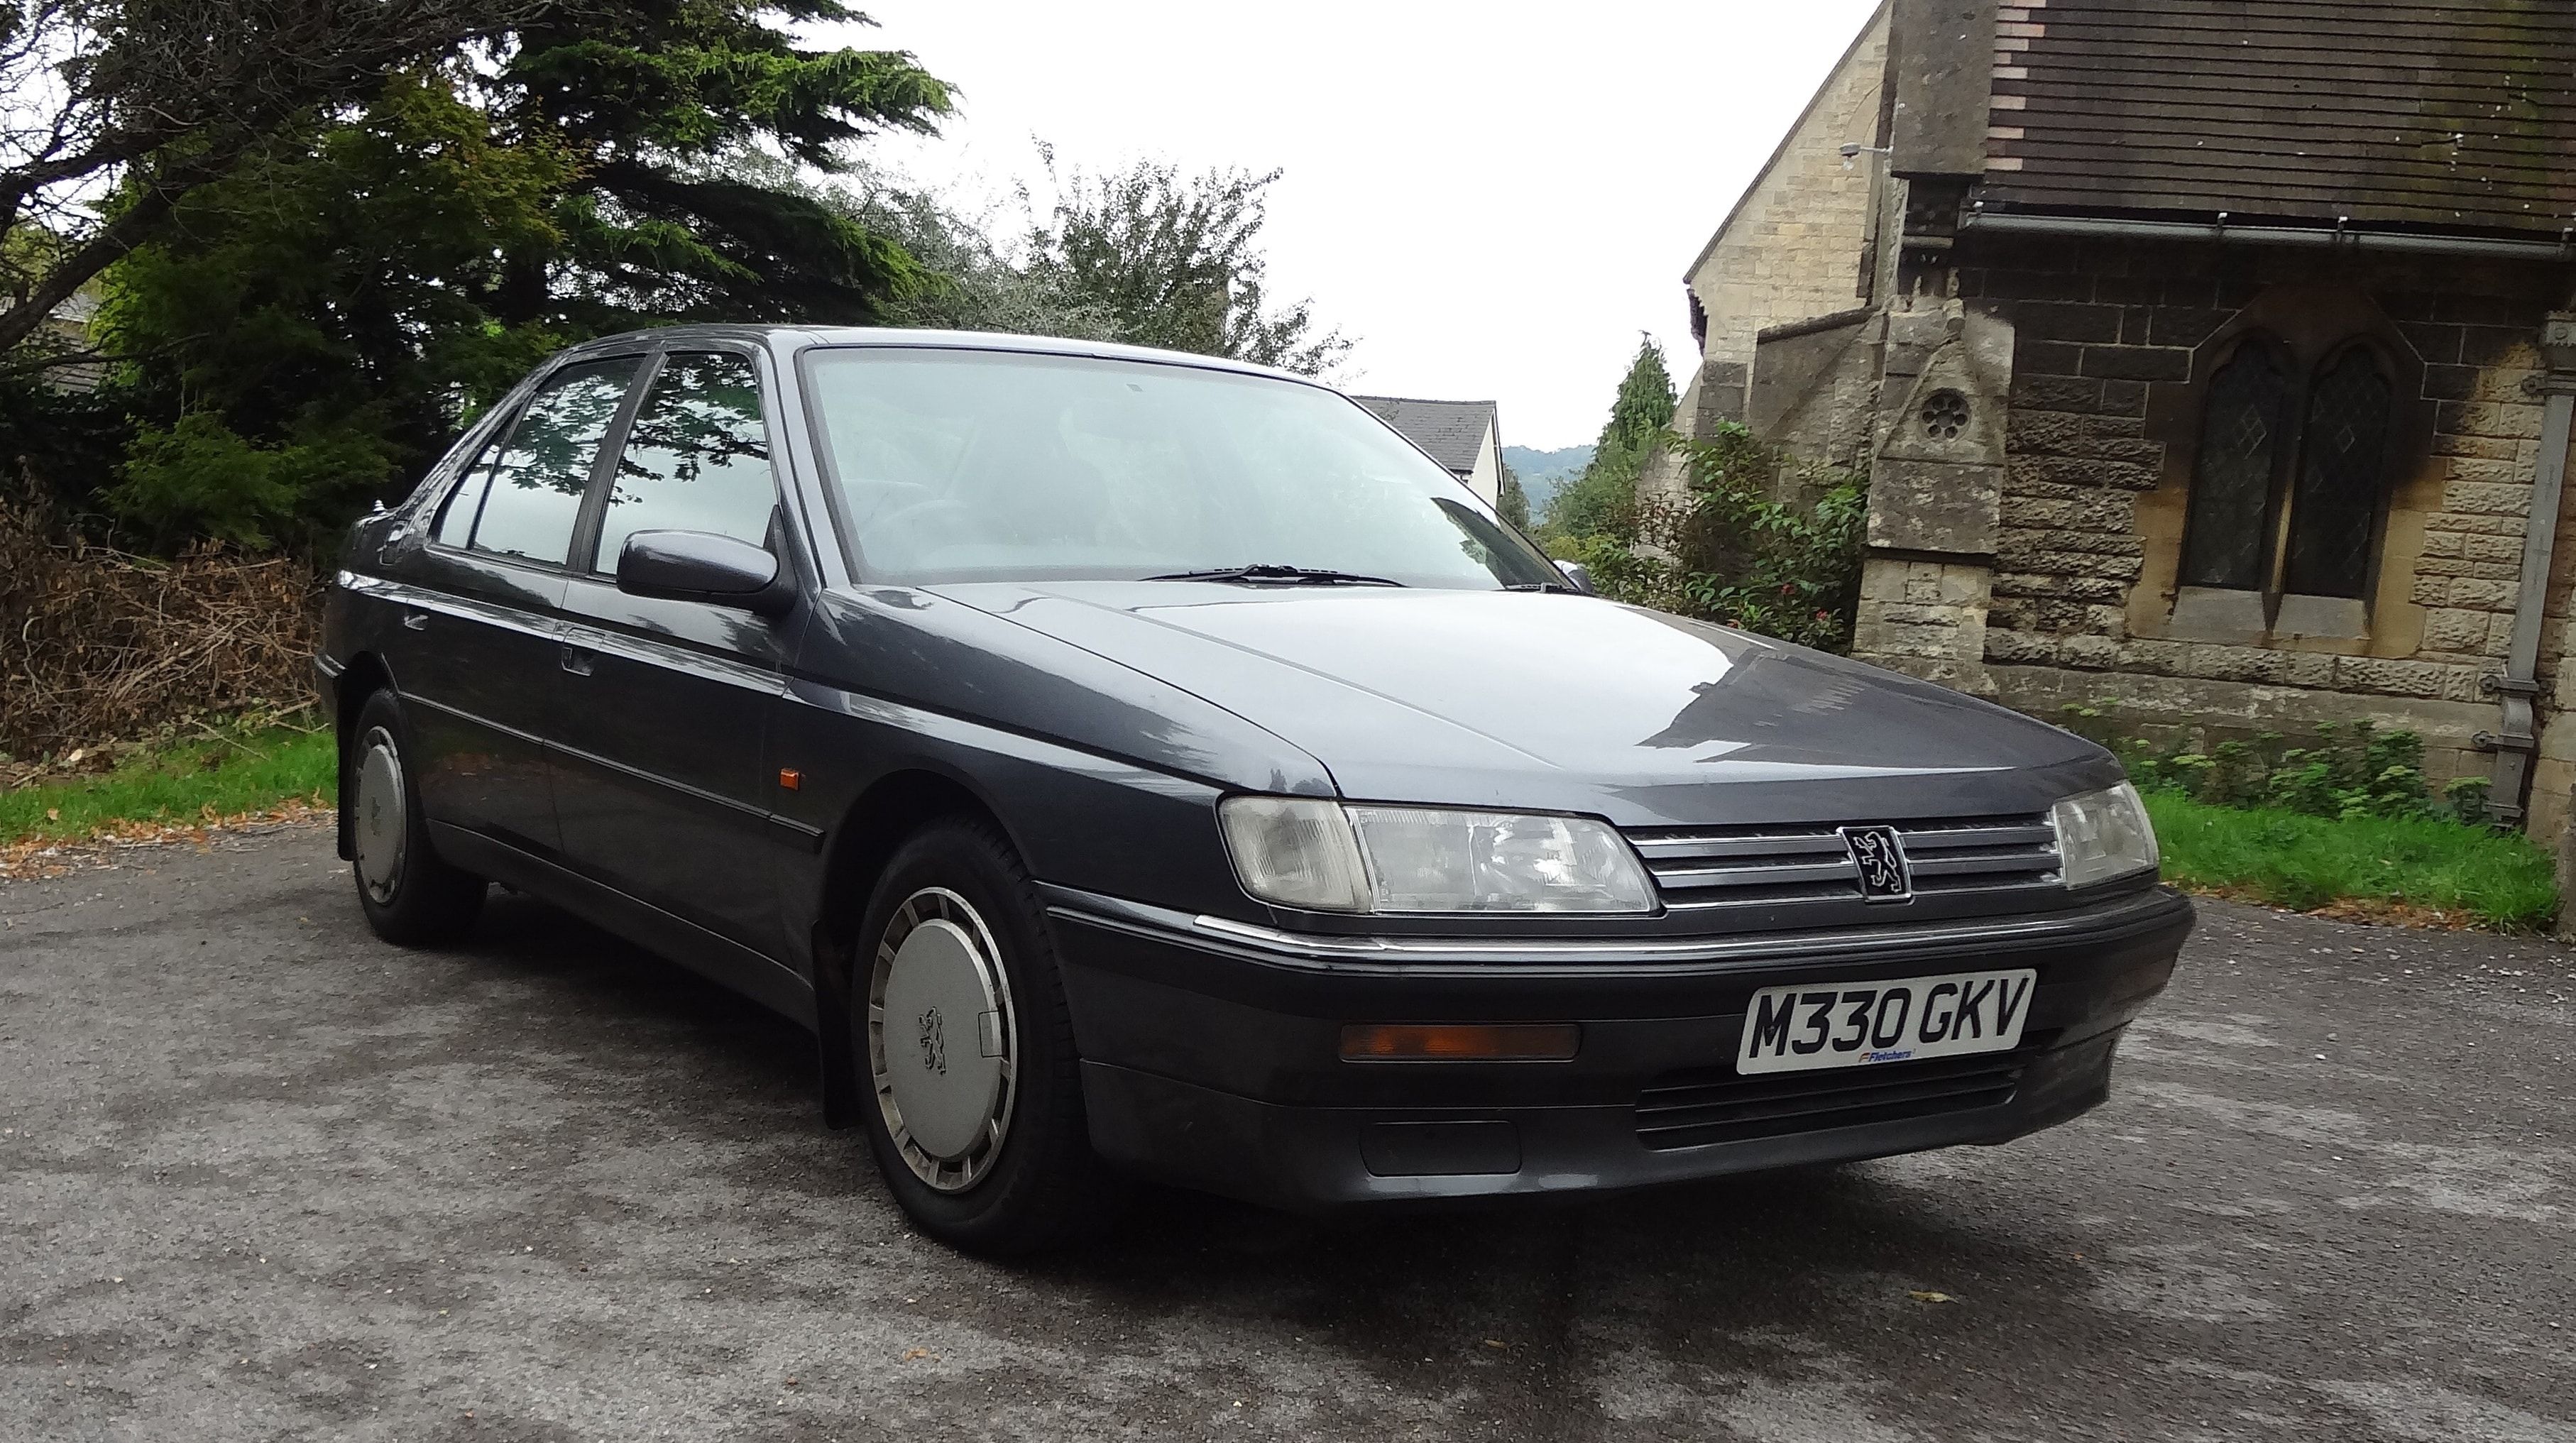 Peugeot 605, Peugeot, 605, saloon car, executive car, pollitt car, automotive, motoring, car, classic car, retro car, old car, ronin, car chase, movie car, ebay motors, autotrader, Tom Wiltshire, M&S,